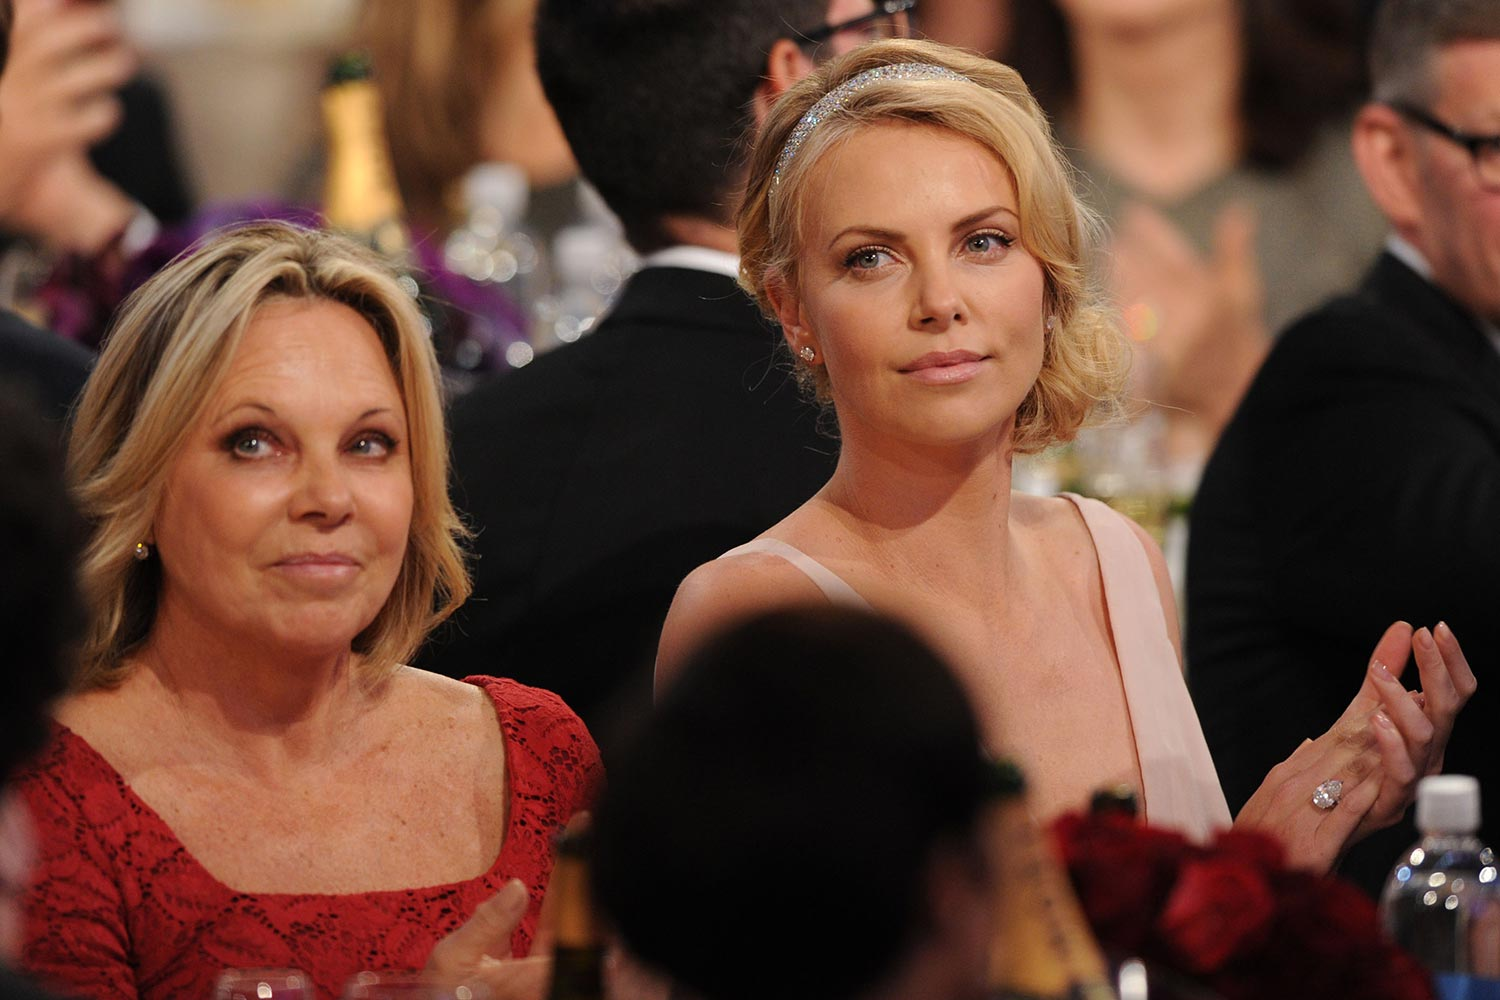 Gerda Theron, Charlize Theron